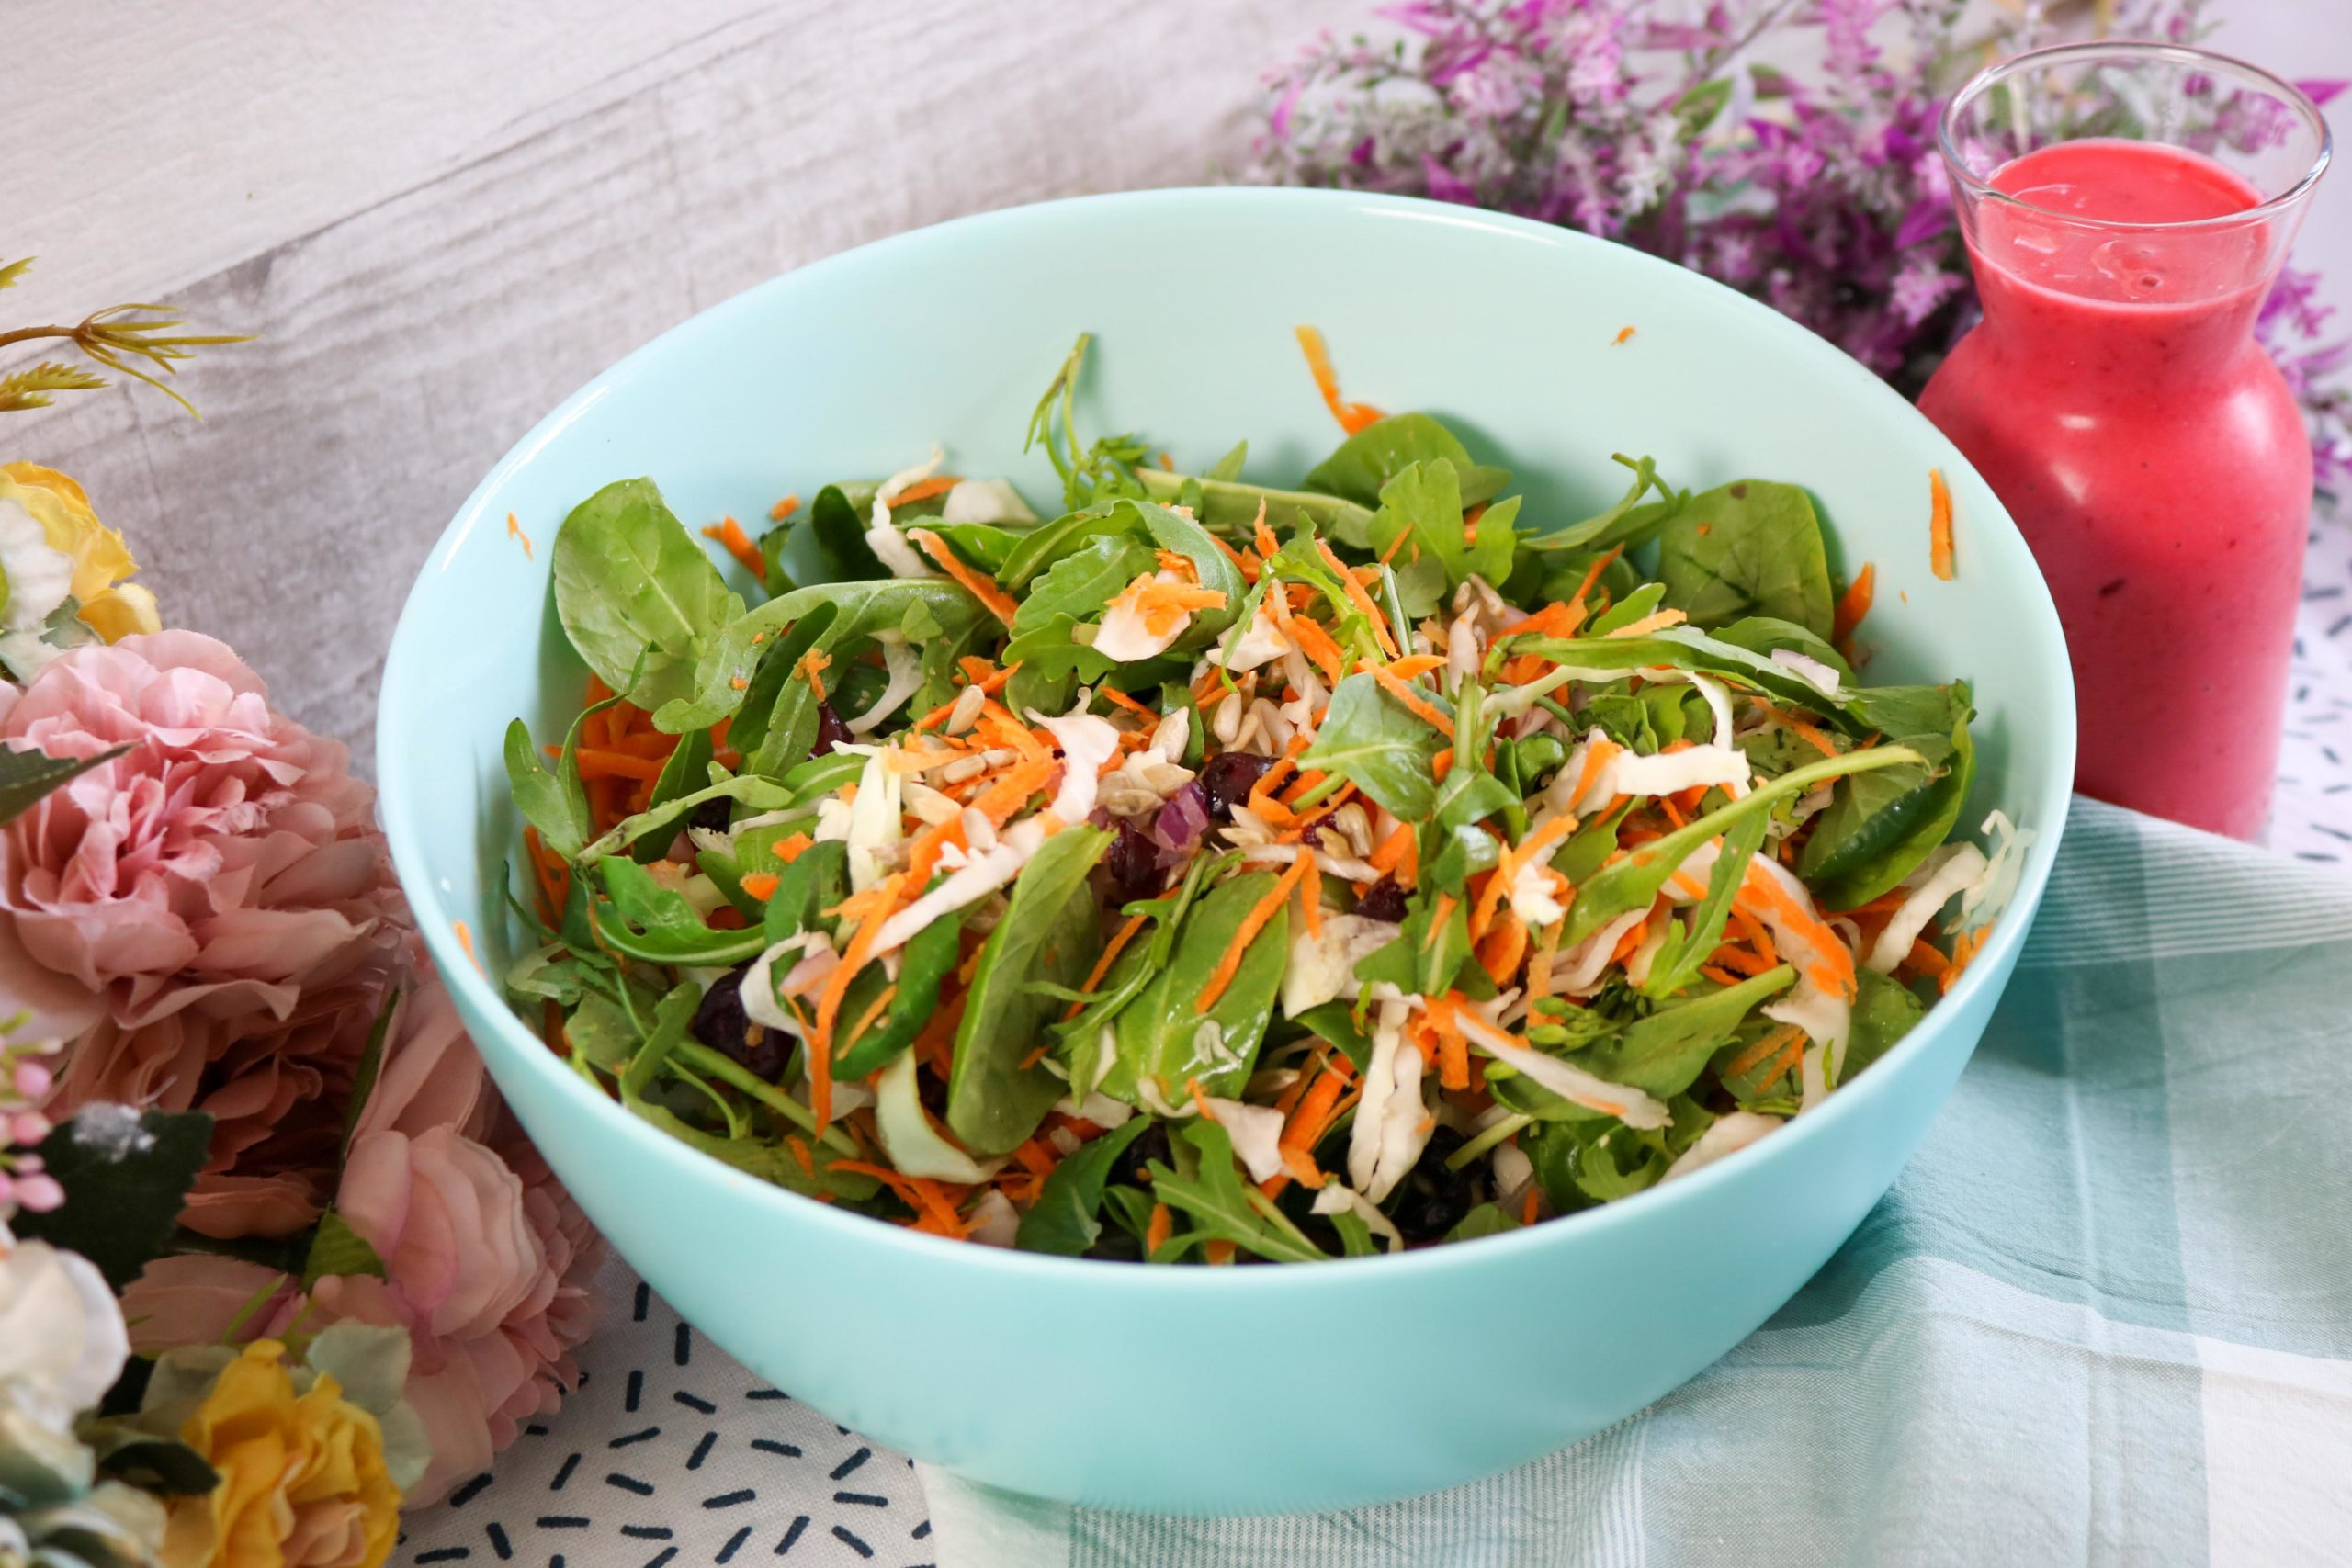 Superfood Crunch Salad